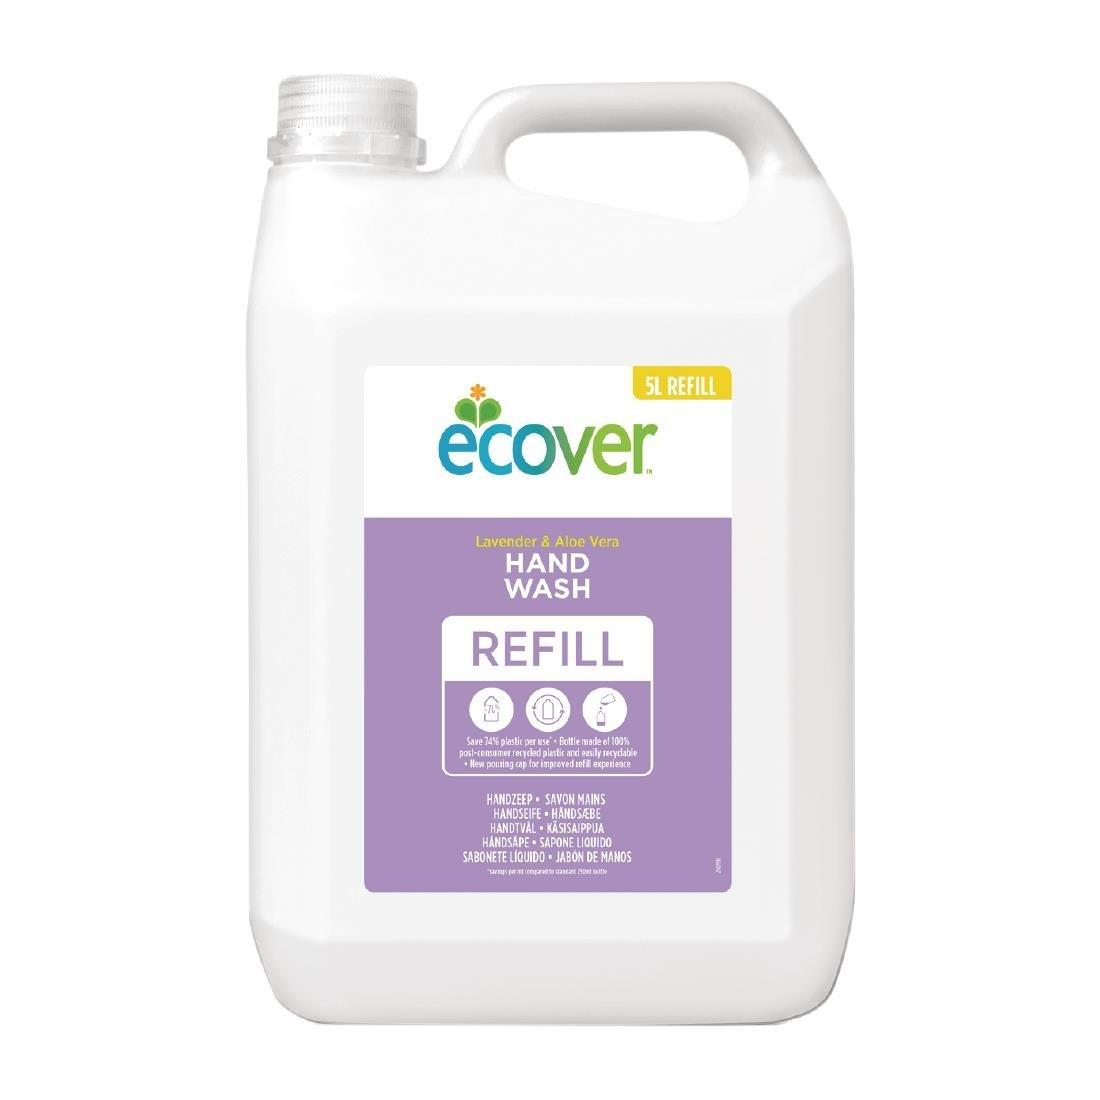 FC469 - Ecover Perfumed Liquid Hand Soap Lavender 4 x 5Ltr (4 Pack of 20Ltrs) - FC469